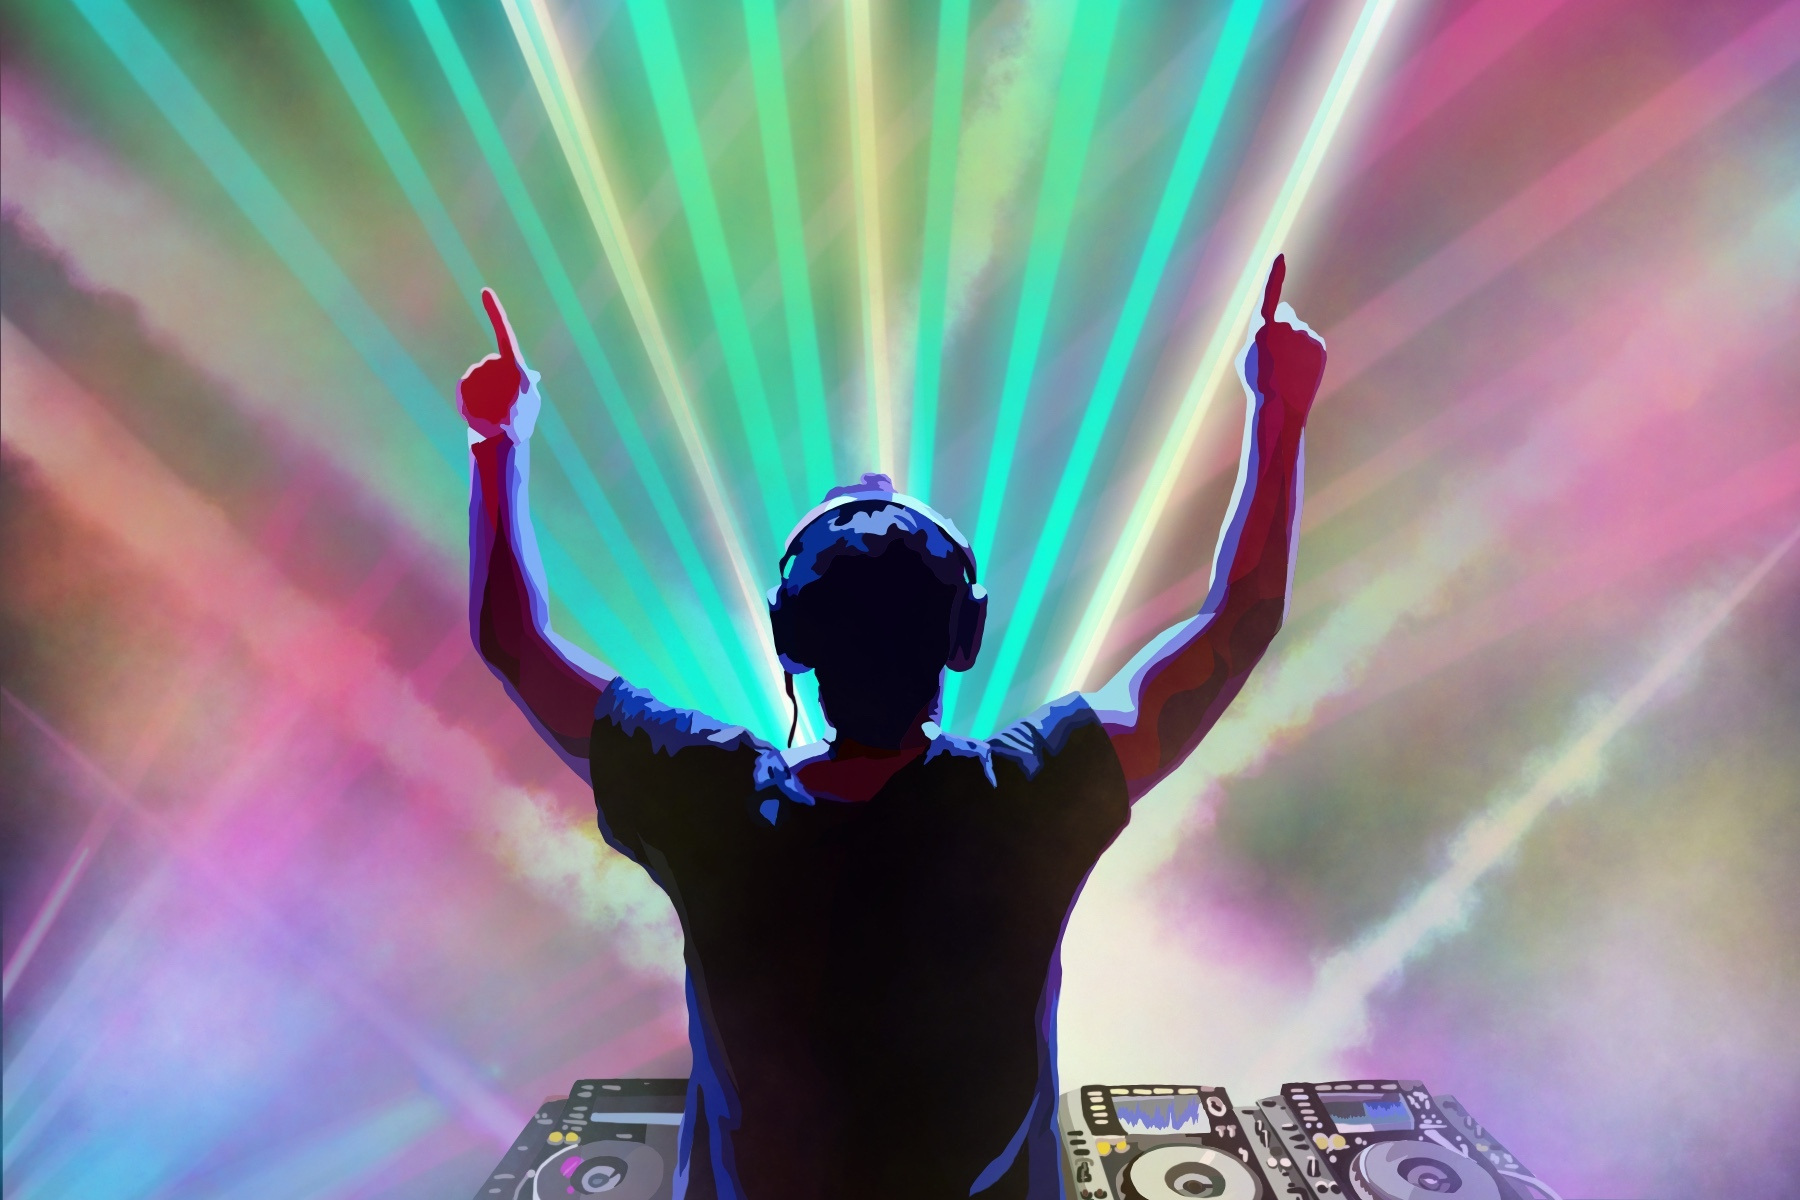 DJ performing in front of laser lights at an EDM show.